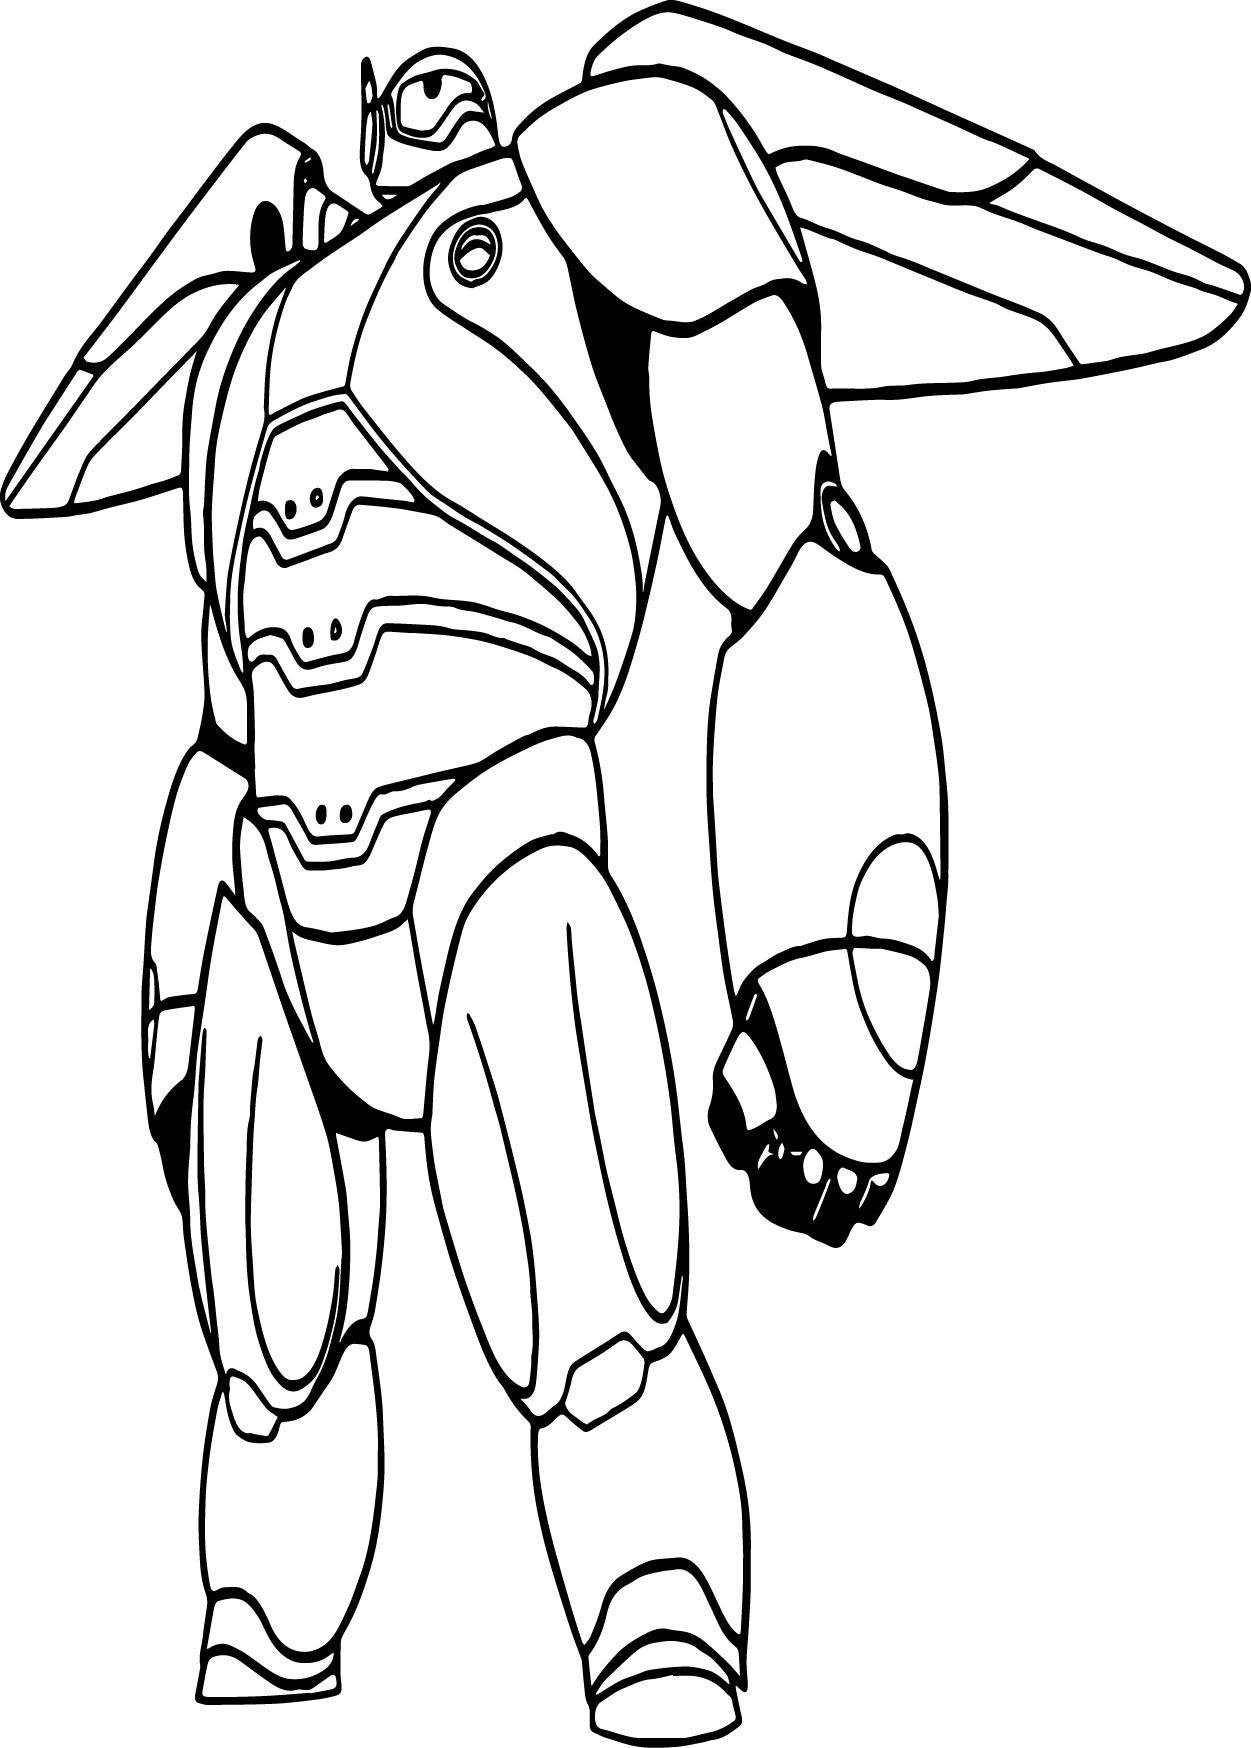 Big Hero 6 Characters Baymax Mech Robot Coloring Page